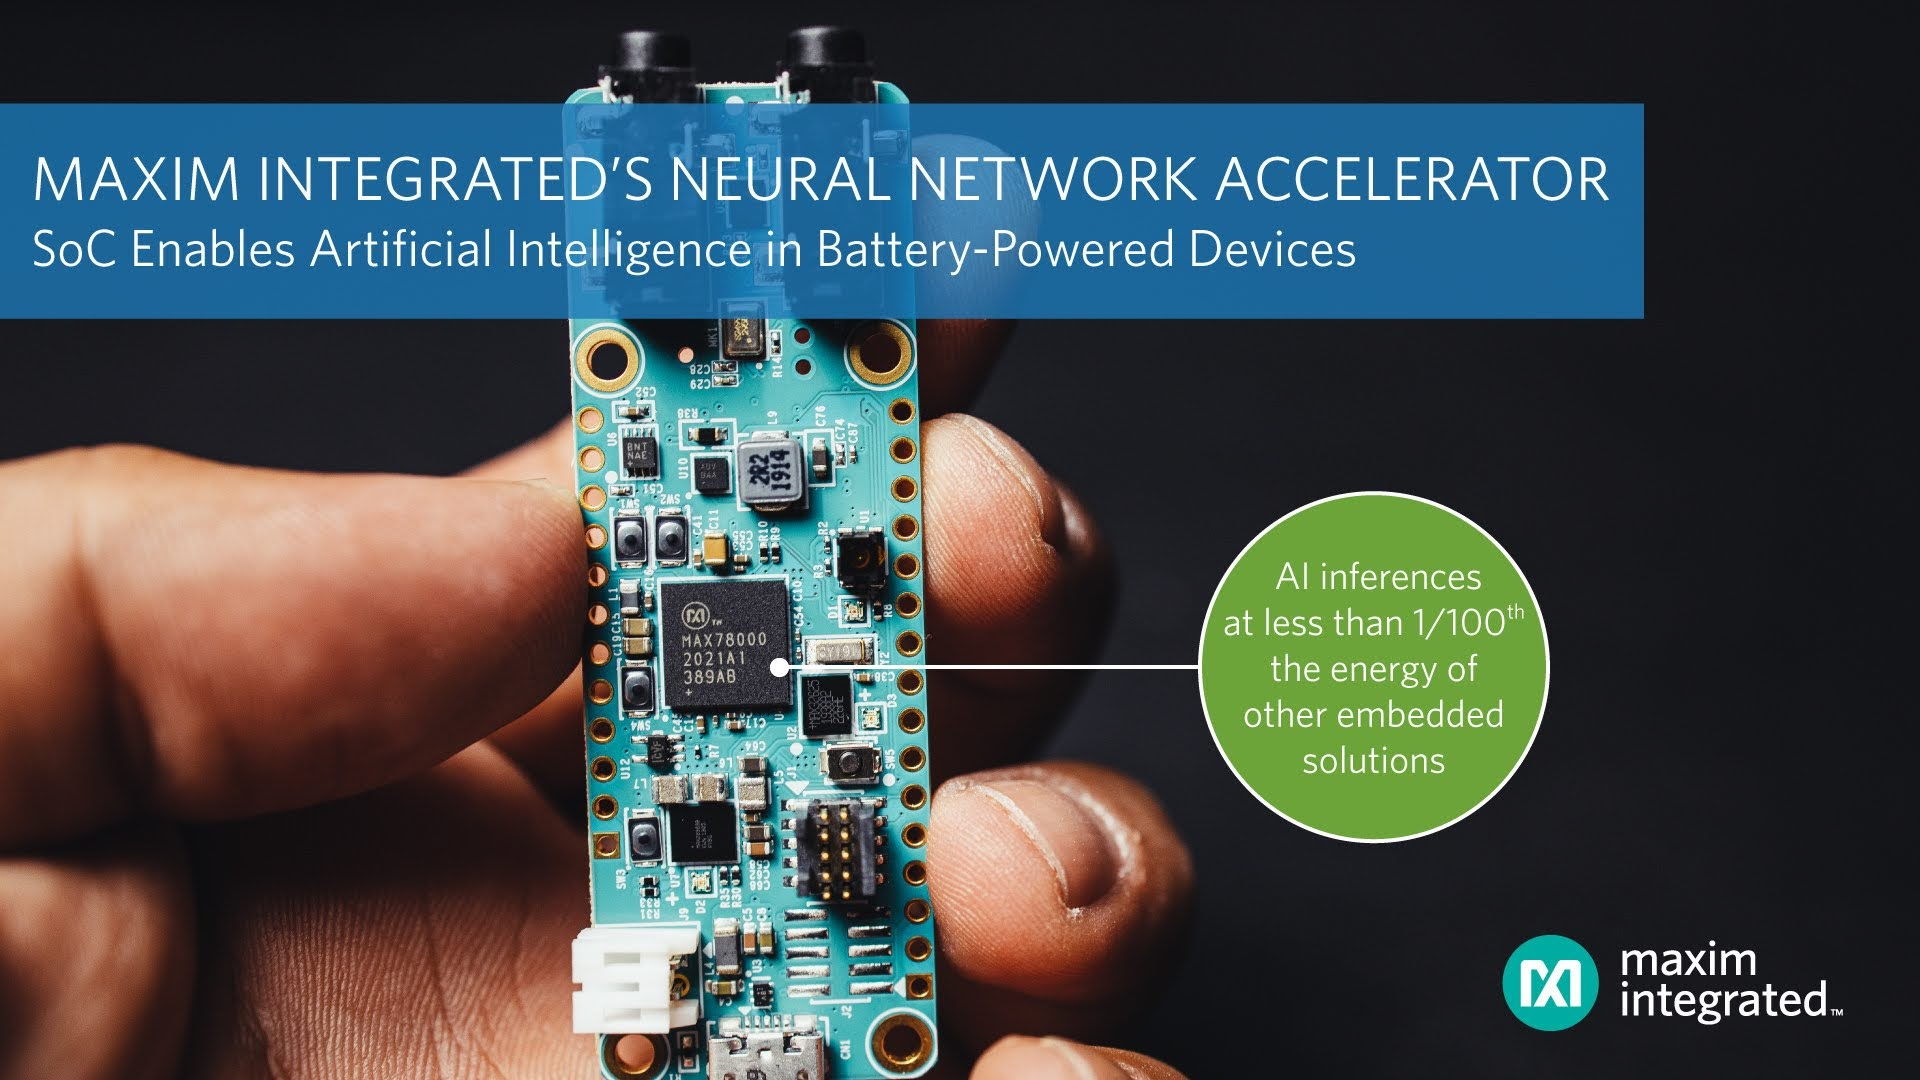 MAX78000 low-power neural network accelerated chip moves AI to the edge without performance compromises in battery-powered IoT devices.